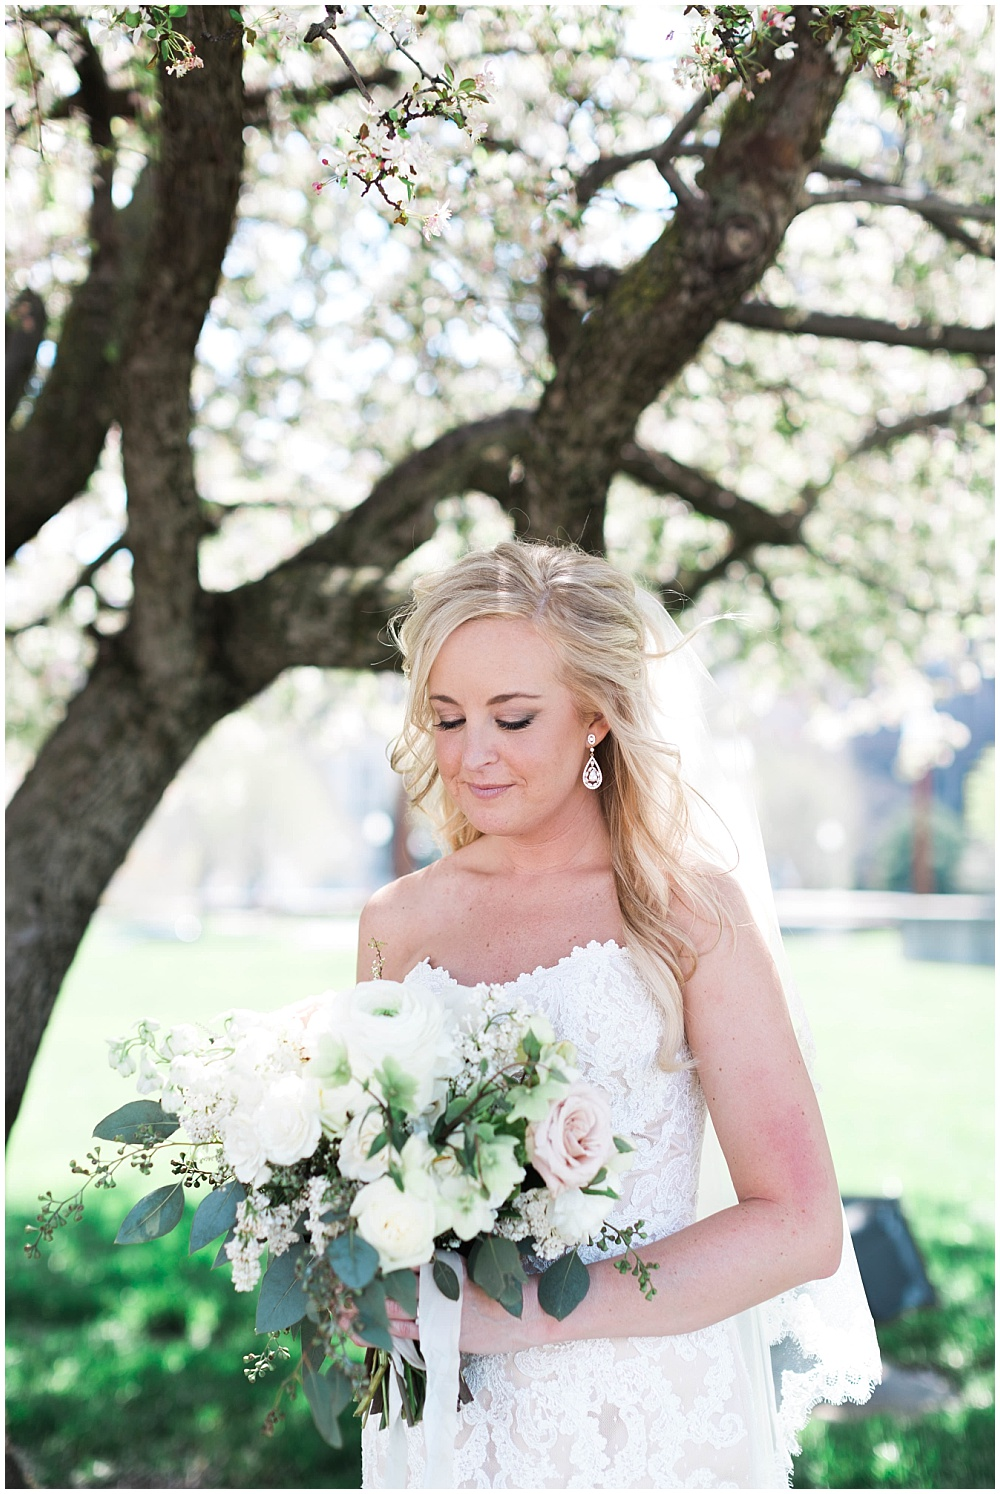 Lace strapless wedding gown with blush bridal bouquet | Downtown Indianapolis Wedding by Gabrielle Cheikh Photography & Jessica Dum Wedding Coordination